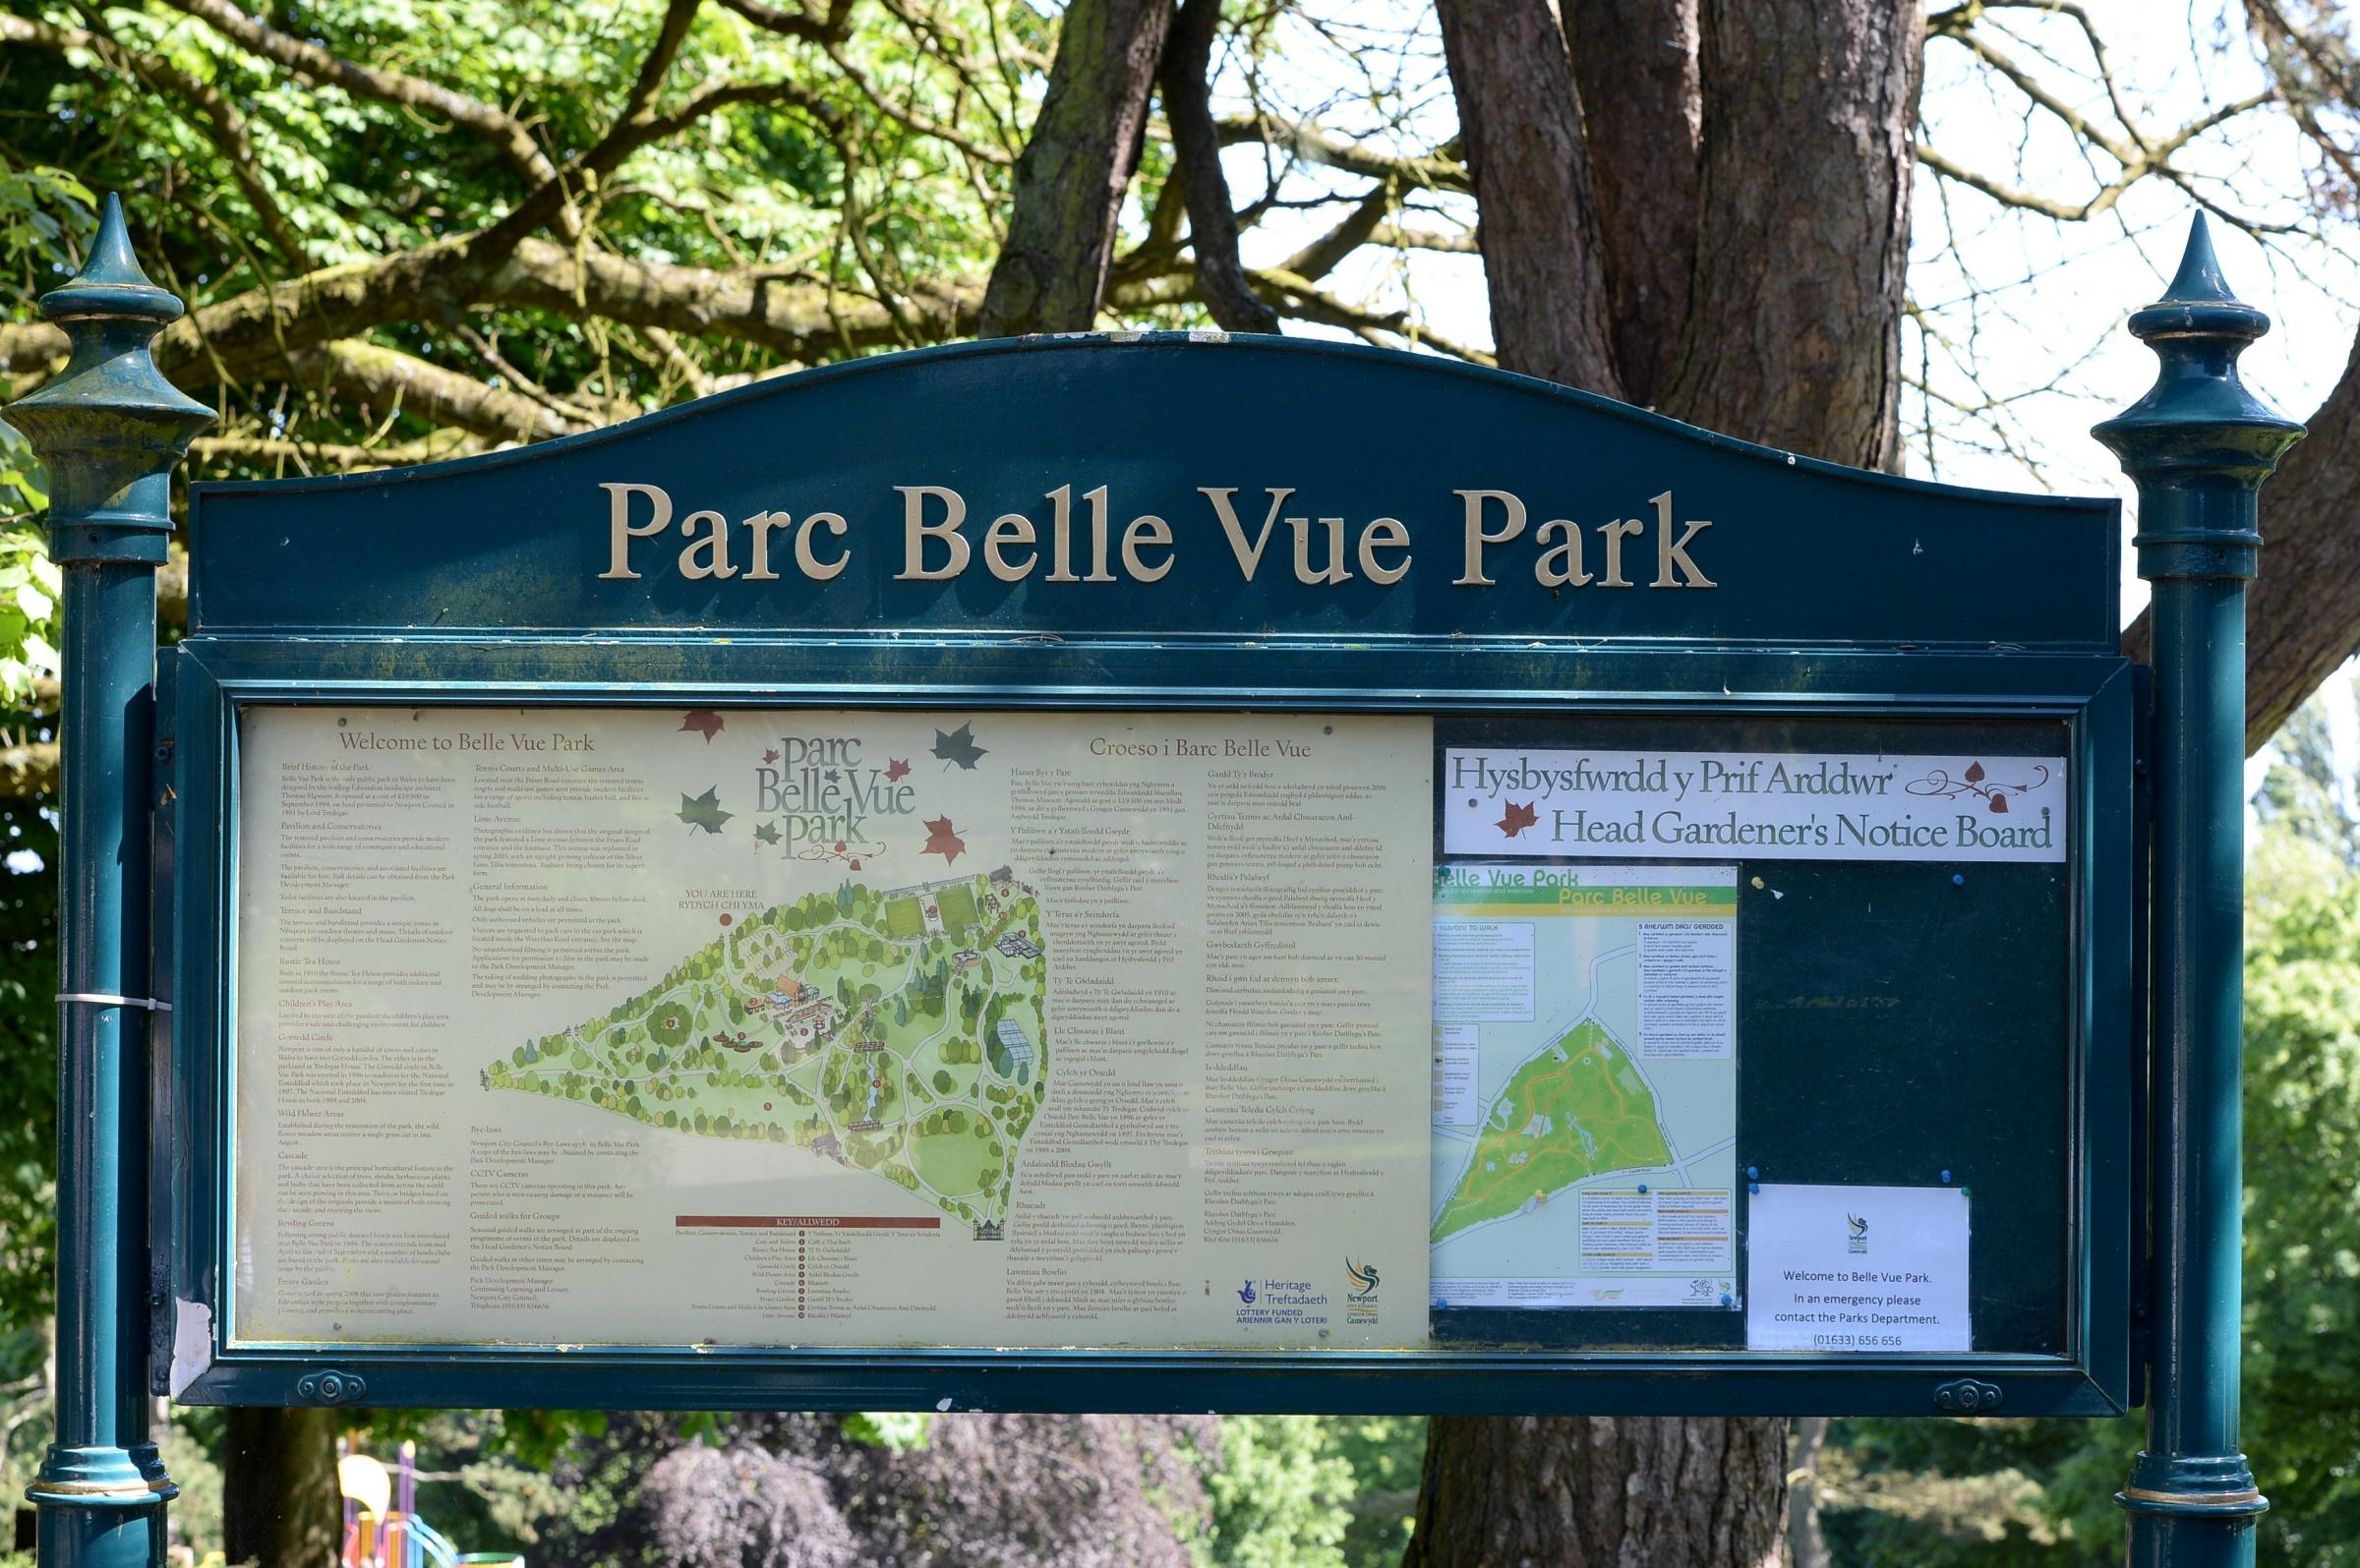 Belle Vue Park feature for Weekend A MAP  On display i